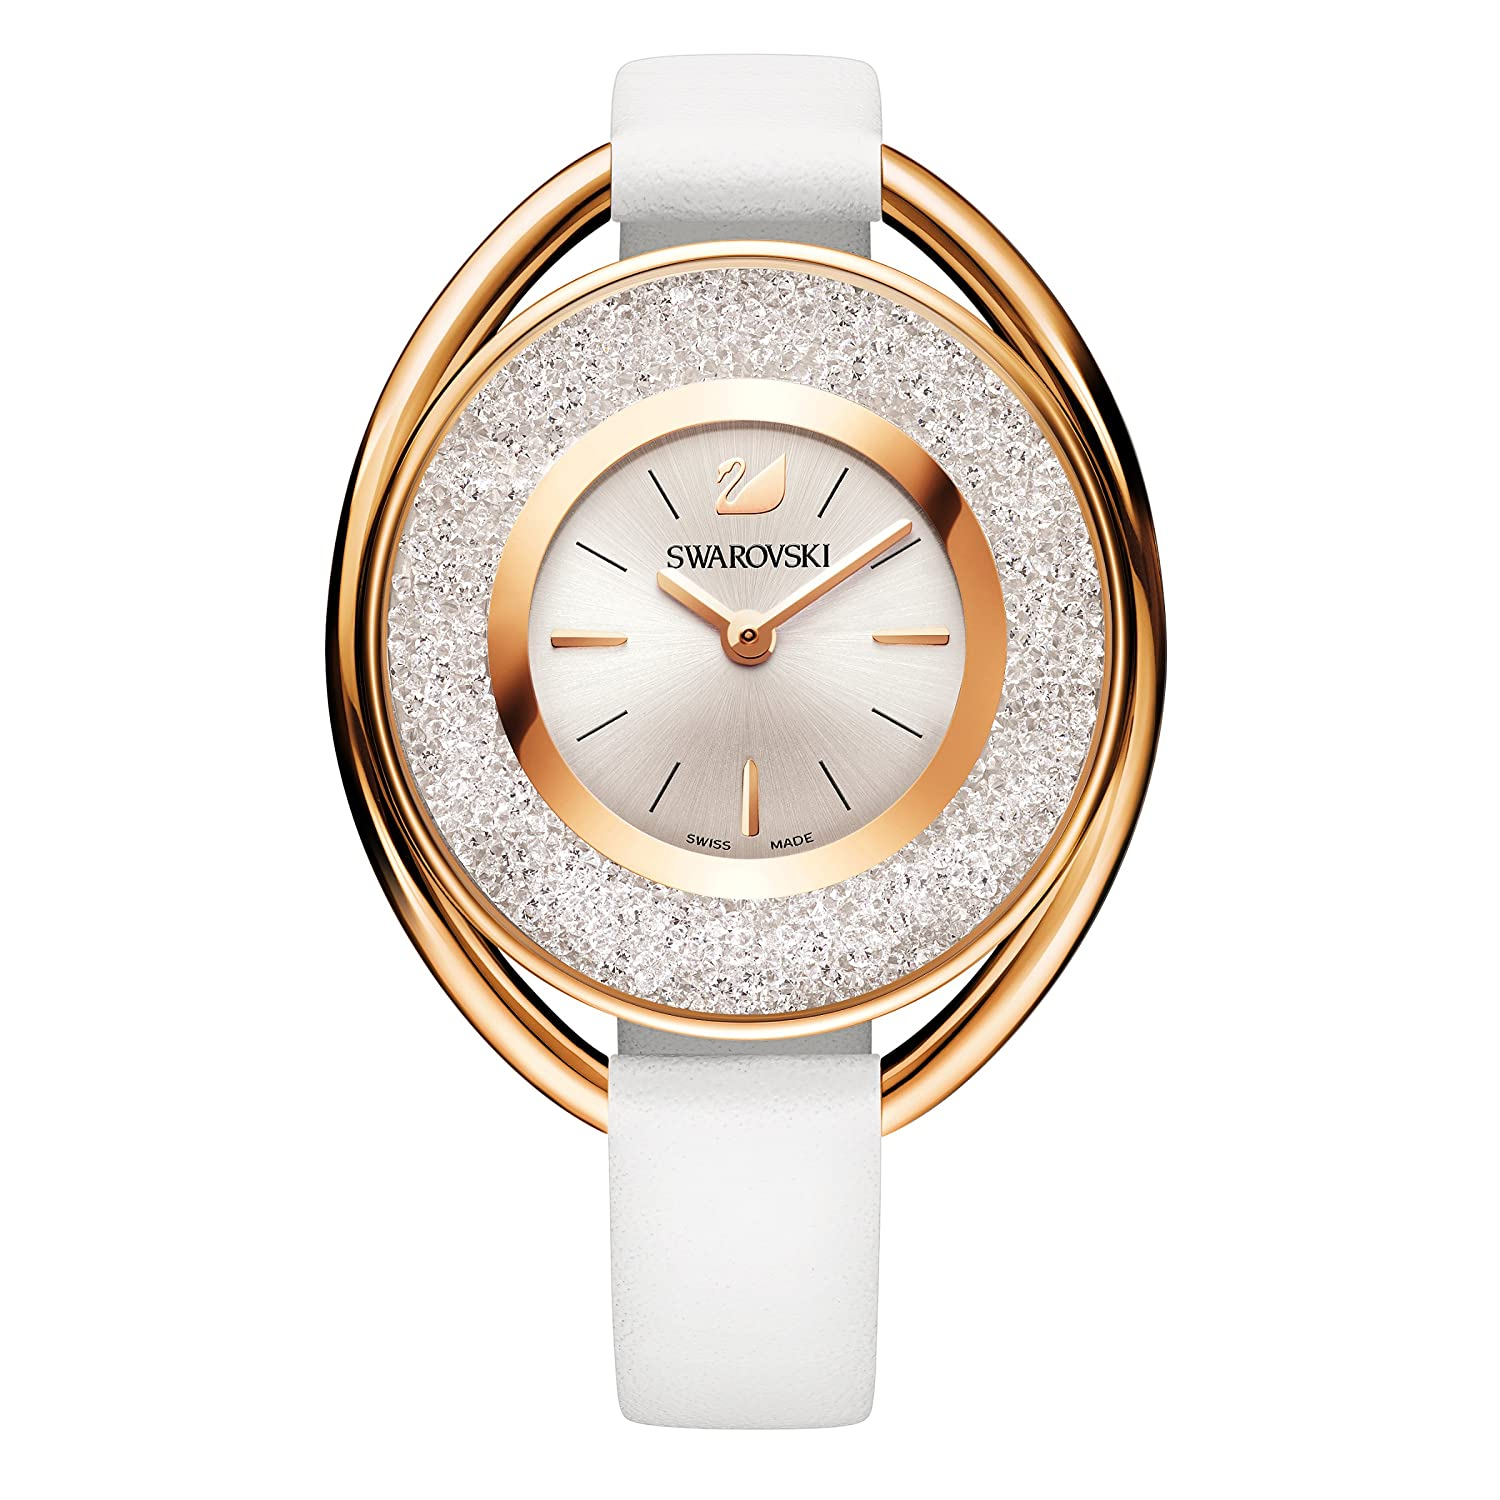 Amazon.com: Swarovski Crystalline White Oval watch 5230946 Woman White Leather: Swarovski: Watches